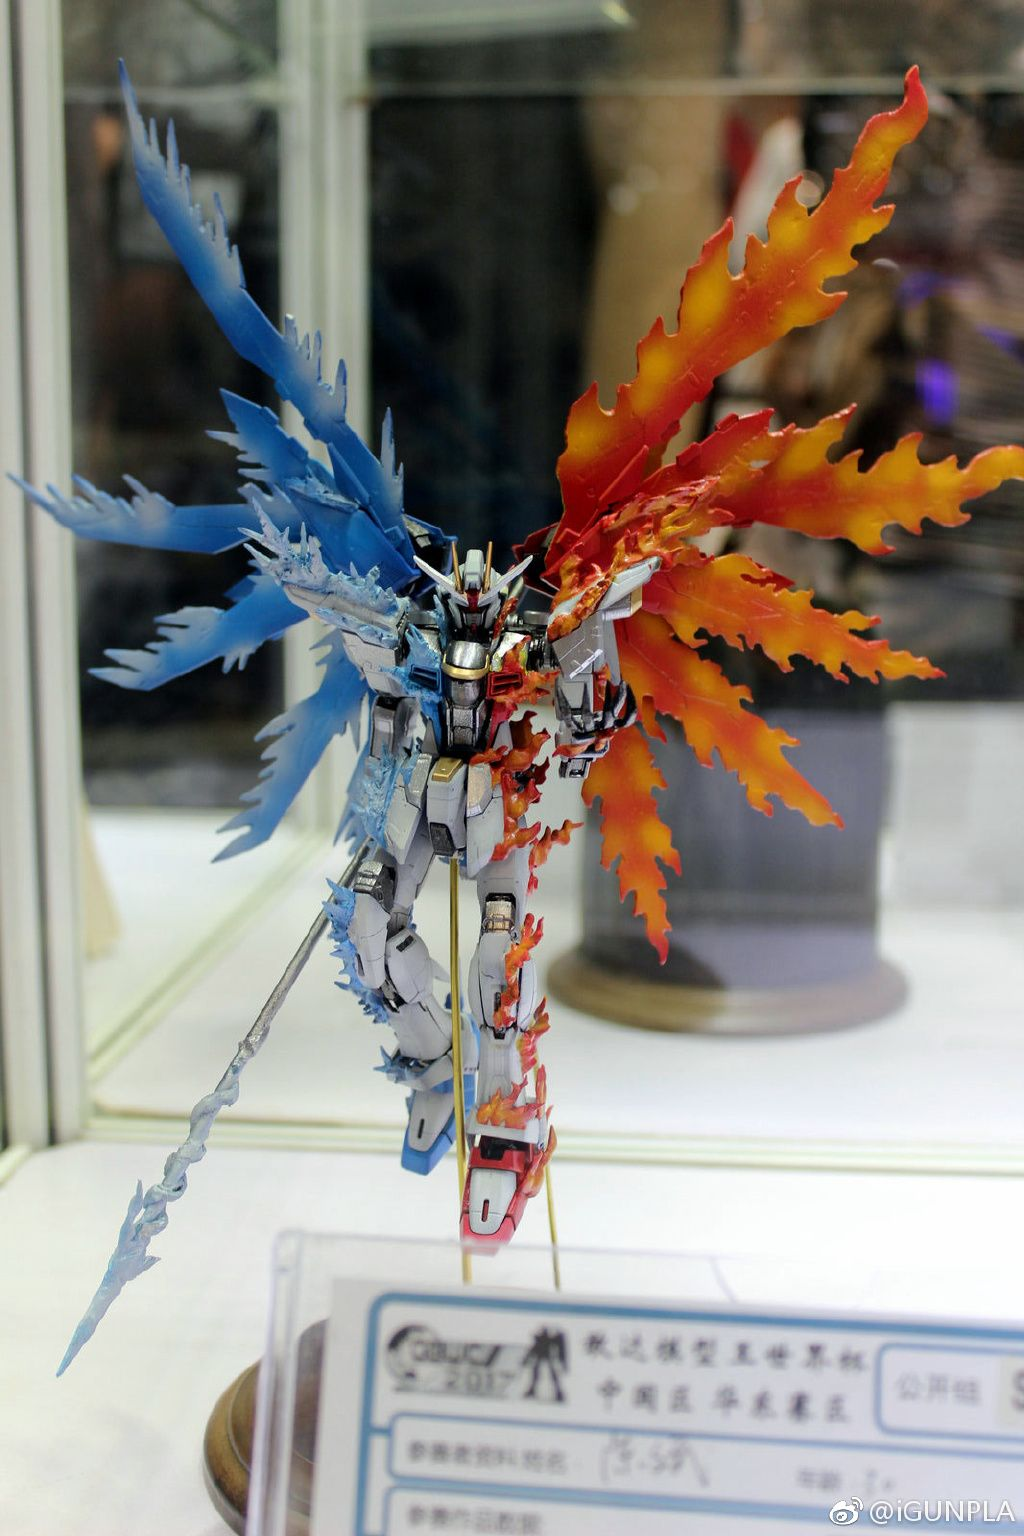 GunPla Builders World Cup [GBWC] 2017 China East Division